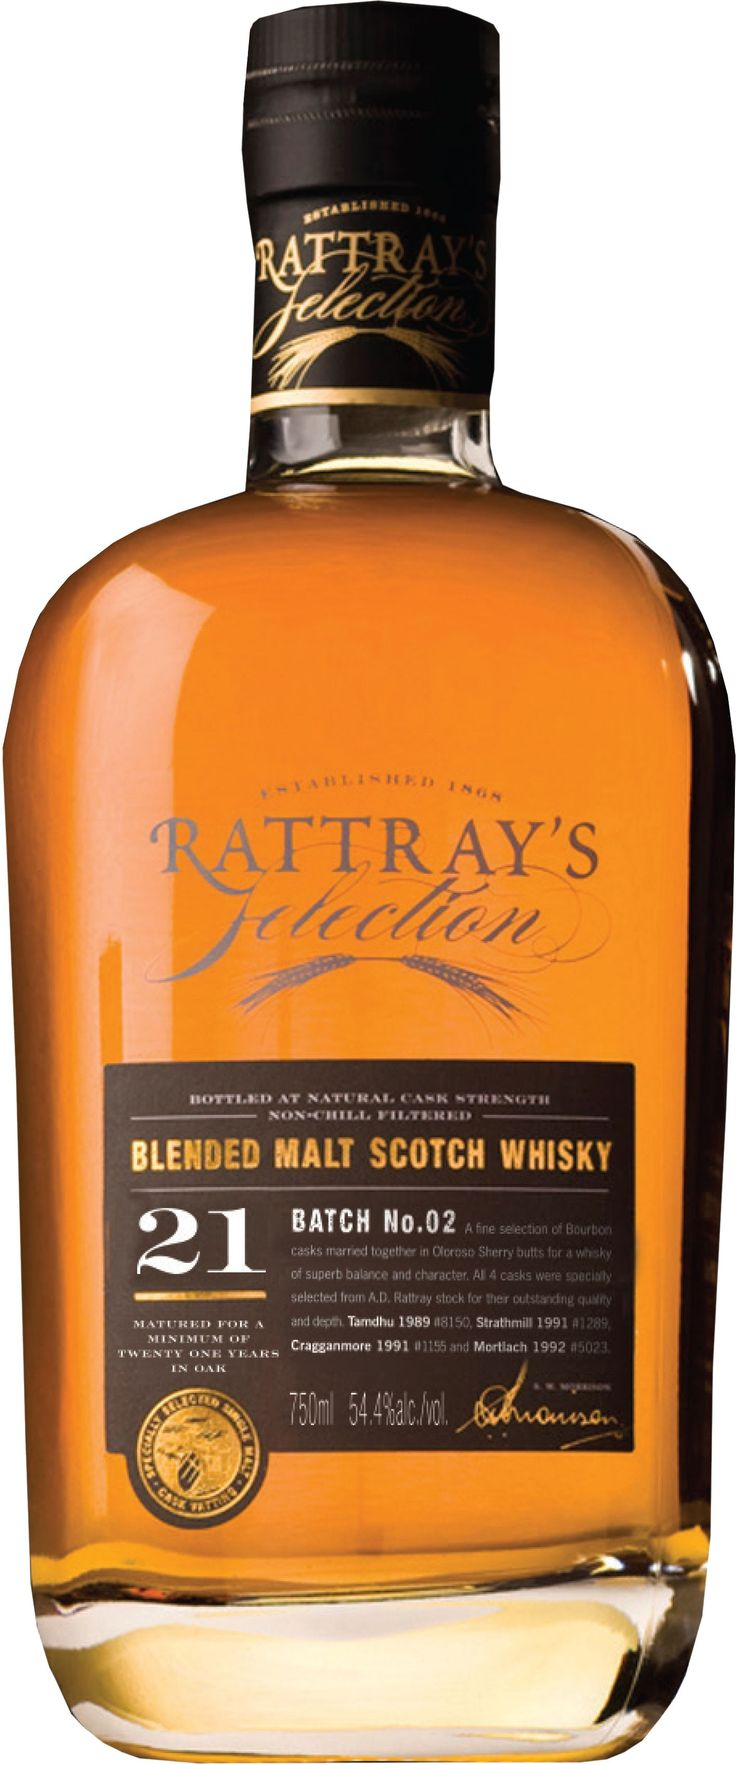 Rattray's Selection Batch #2 21 Year Old Blended Malt #Scotch Whisky.  Aged for over 21 years, this #whisky was crafted by marrying together four unique single malts.   @Caskers